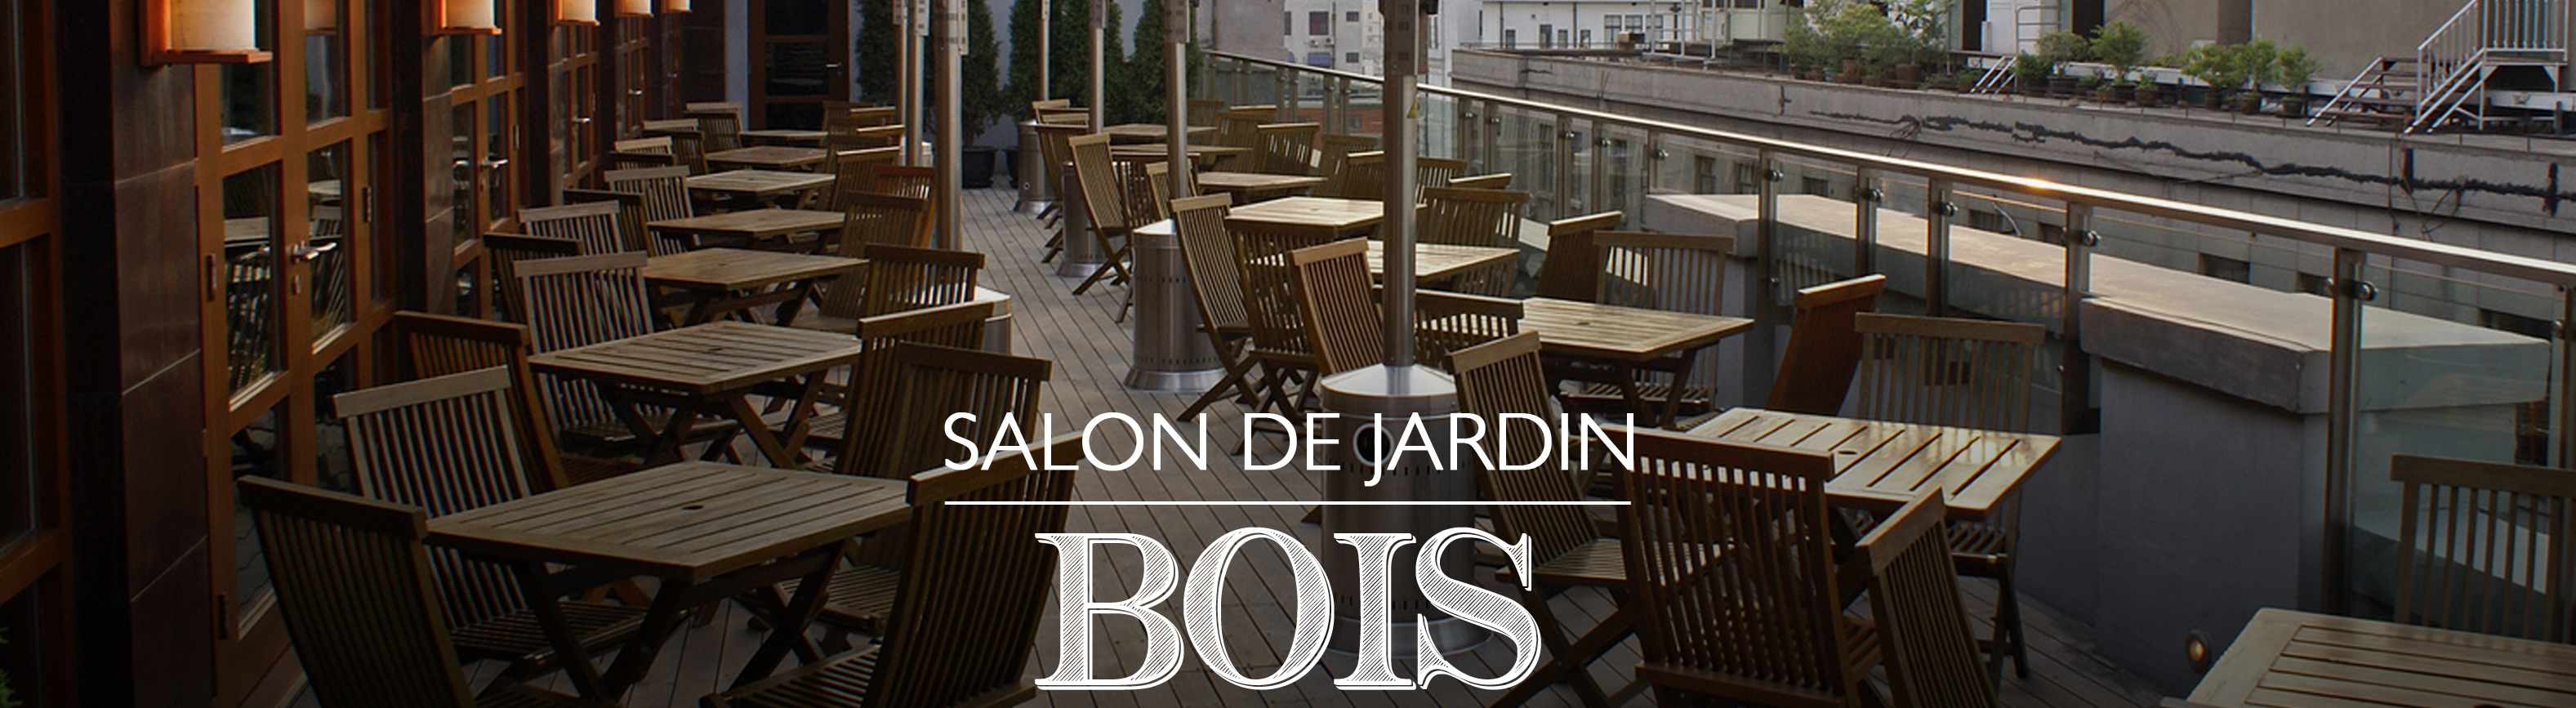 salon de jardin mobilier de jardin bois allstore sas. Black Bedroom Furniture Sets. Home Design Ideas